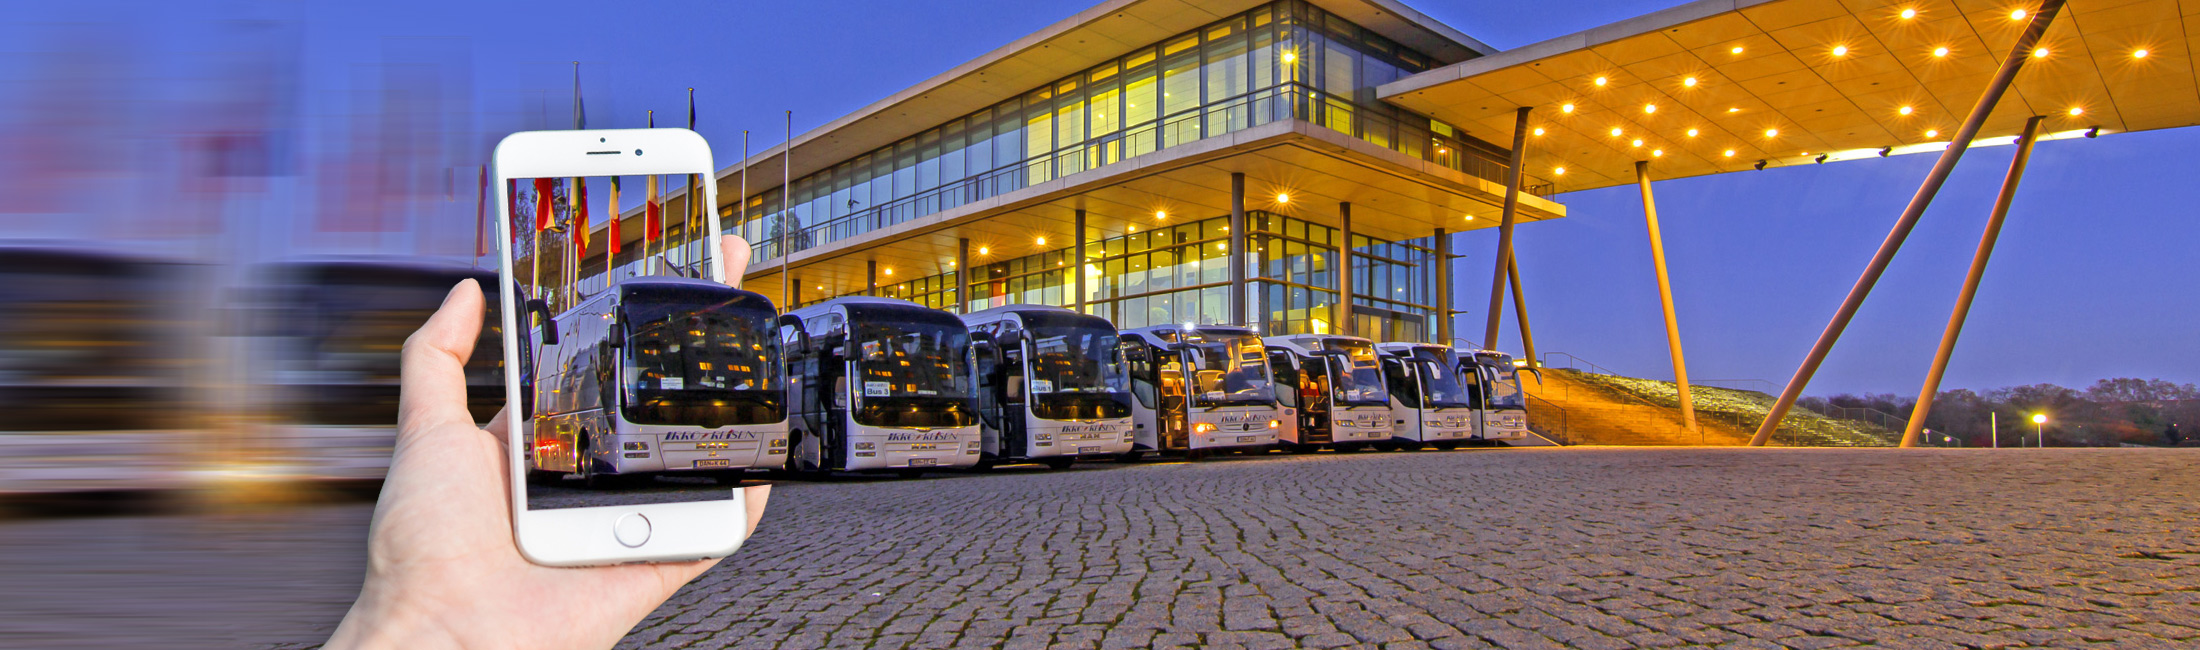 Hamburg Bus Service - Explore Germany